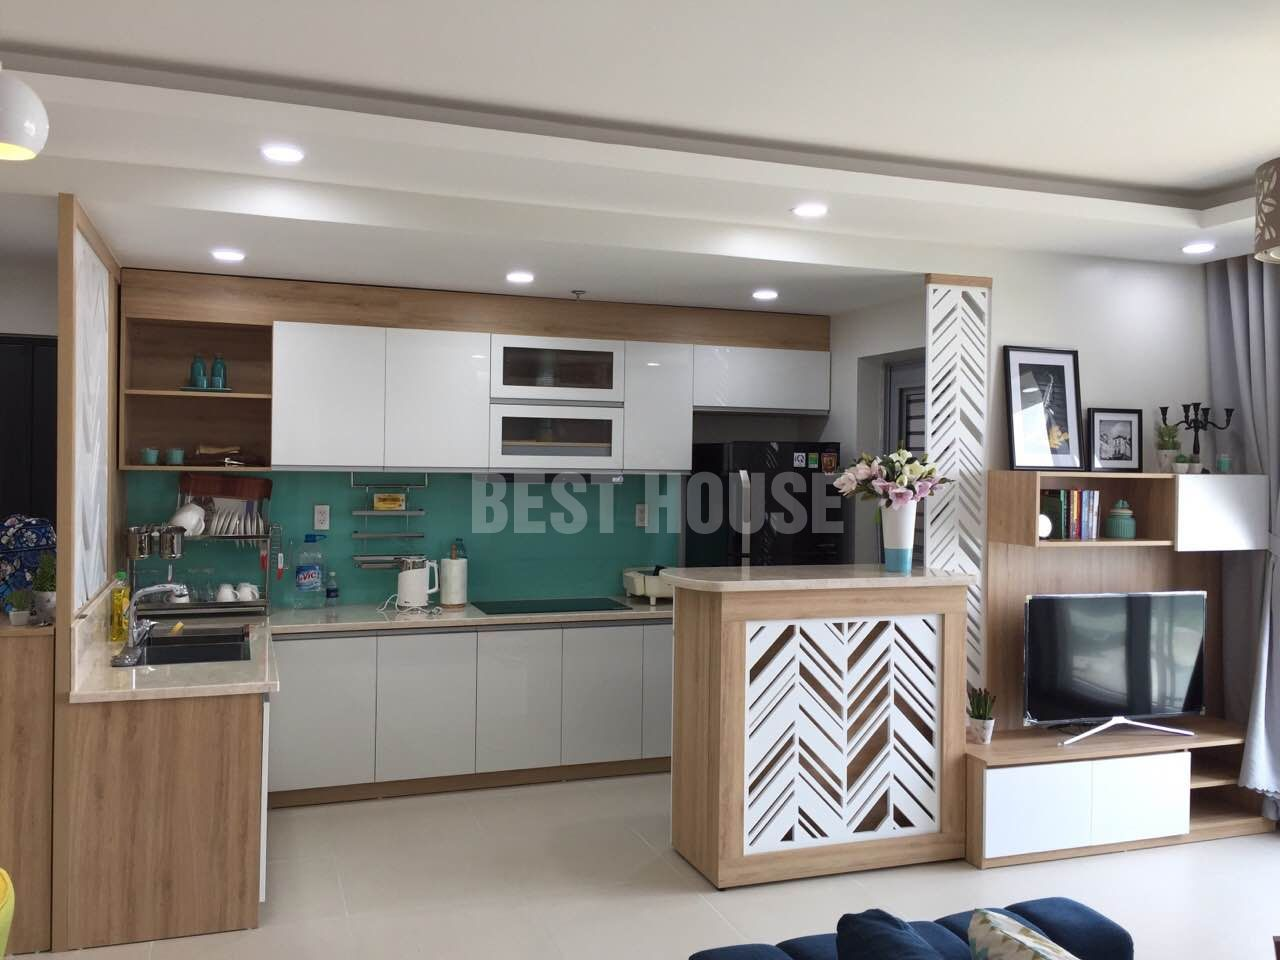 green-valley-apartment-for-rent-in-phu-my-hung-district-7-hcmc-1